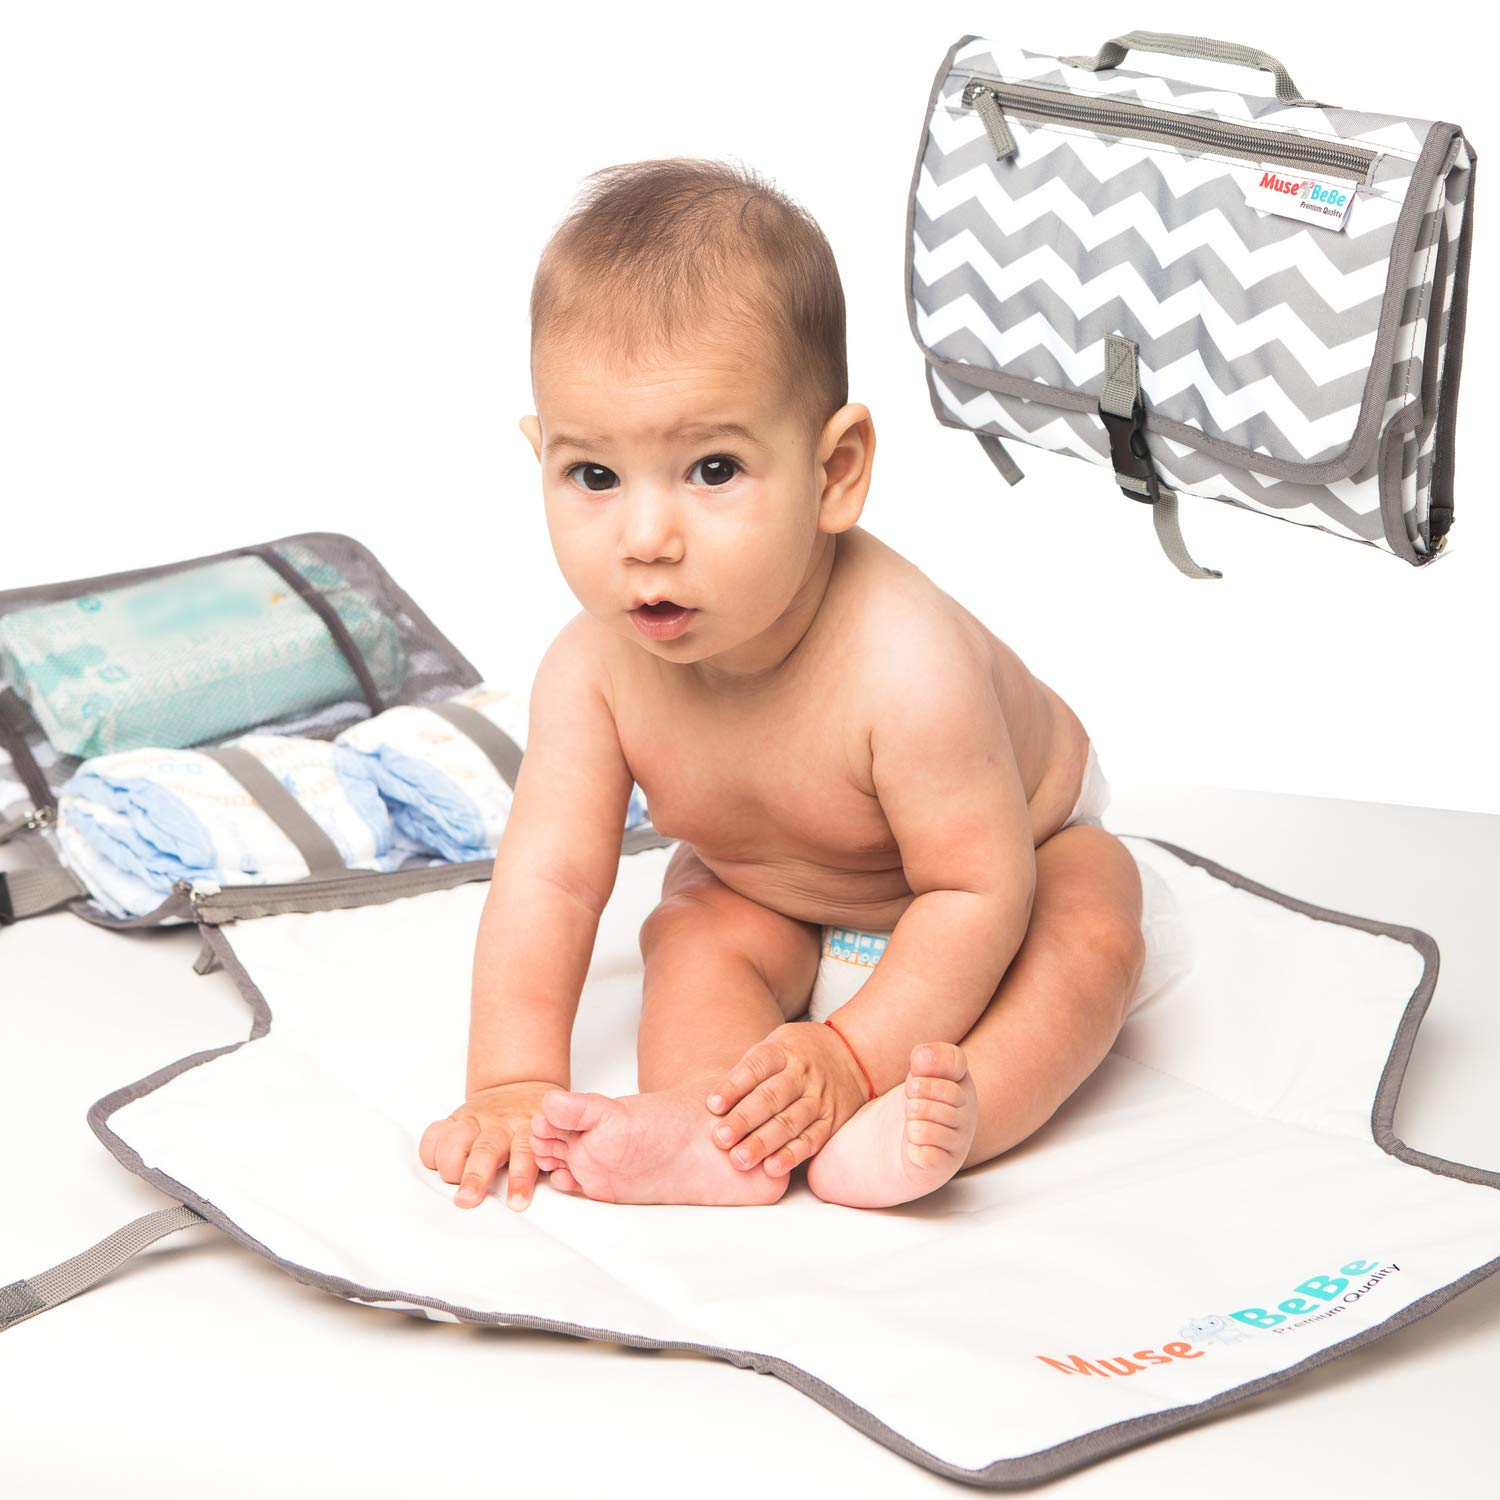 MuseBeBe ~ Portable Changing Pad & Diaper Change Station | 2-in-1 Detachable Mat & Stylish Diaper Clutch for Modern Moms | Compact Tote Bag & Backpack Replacement